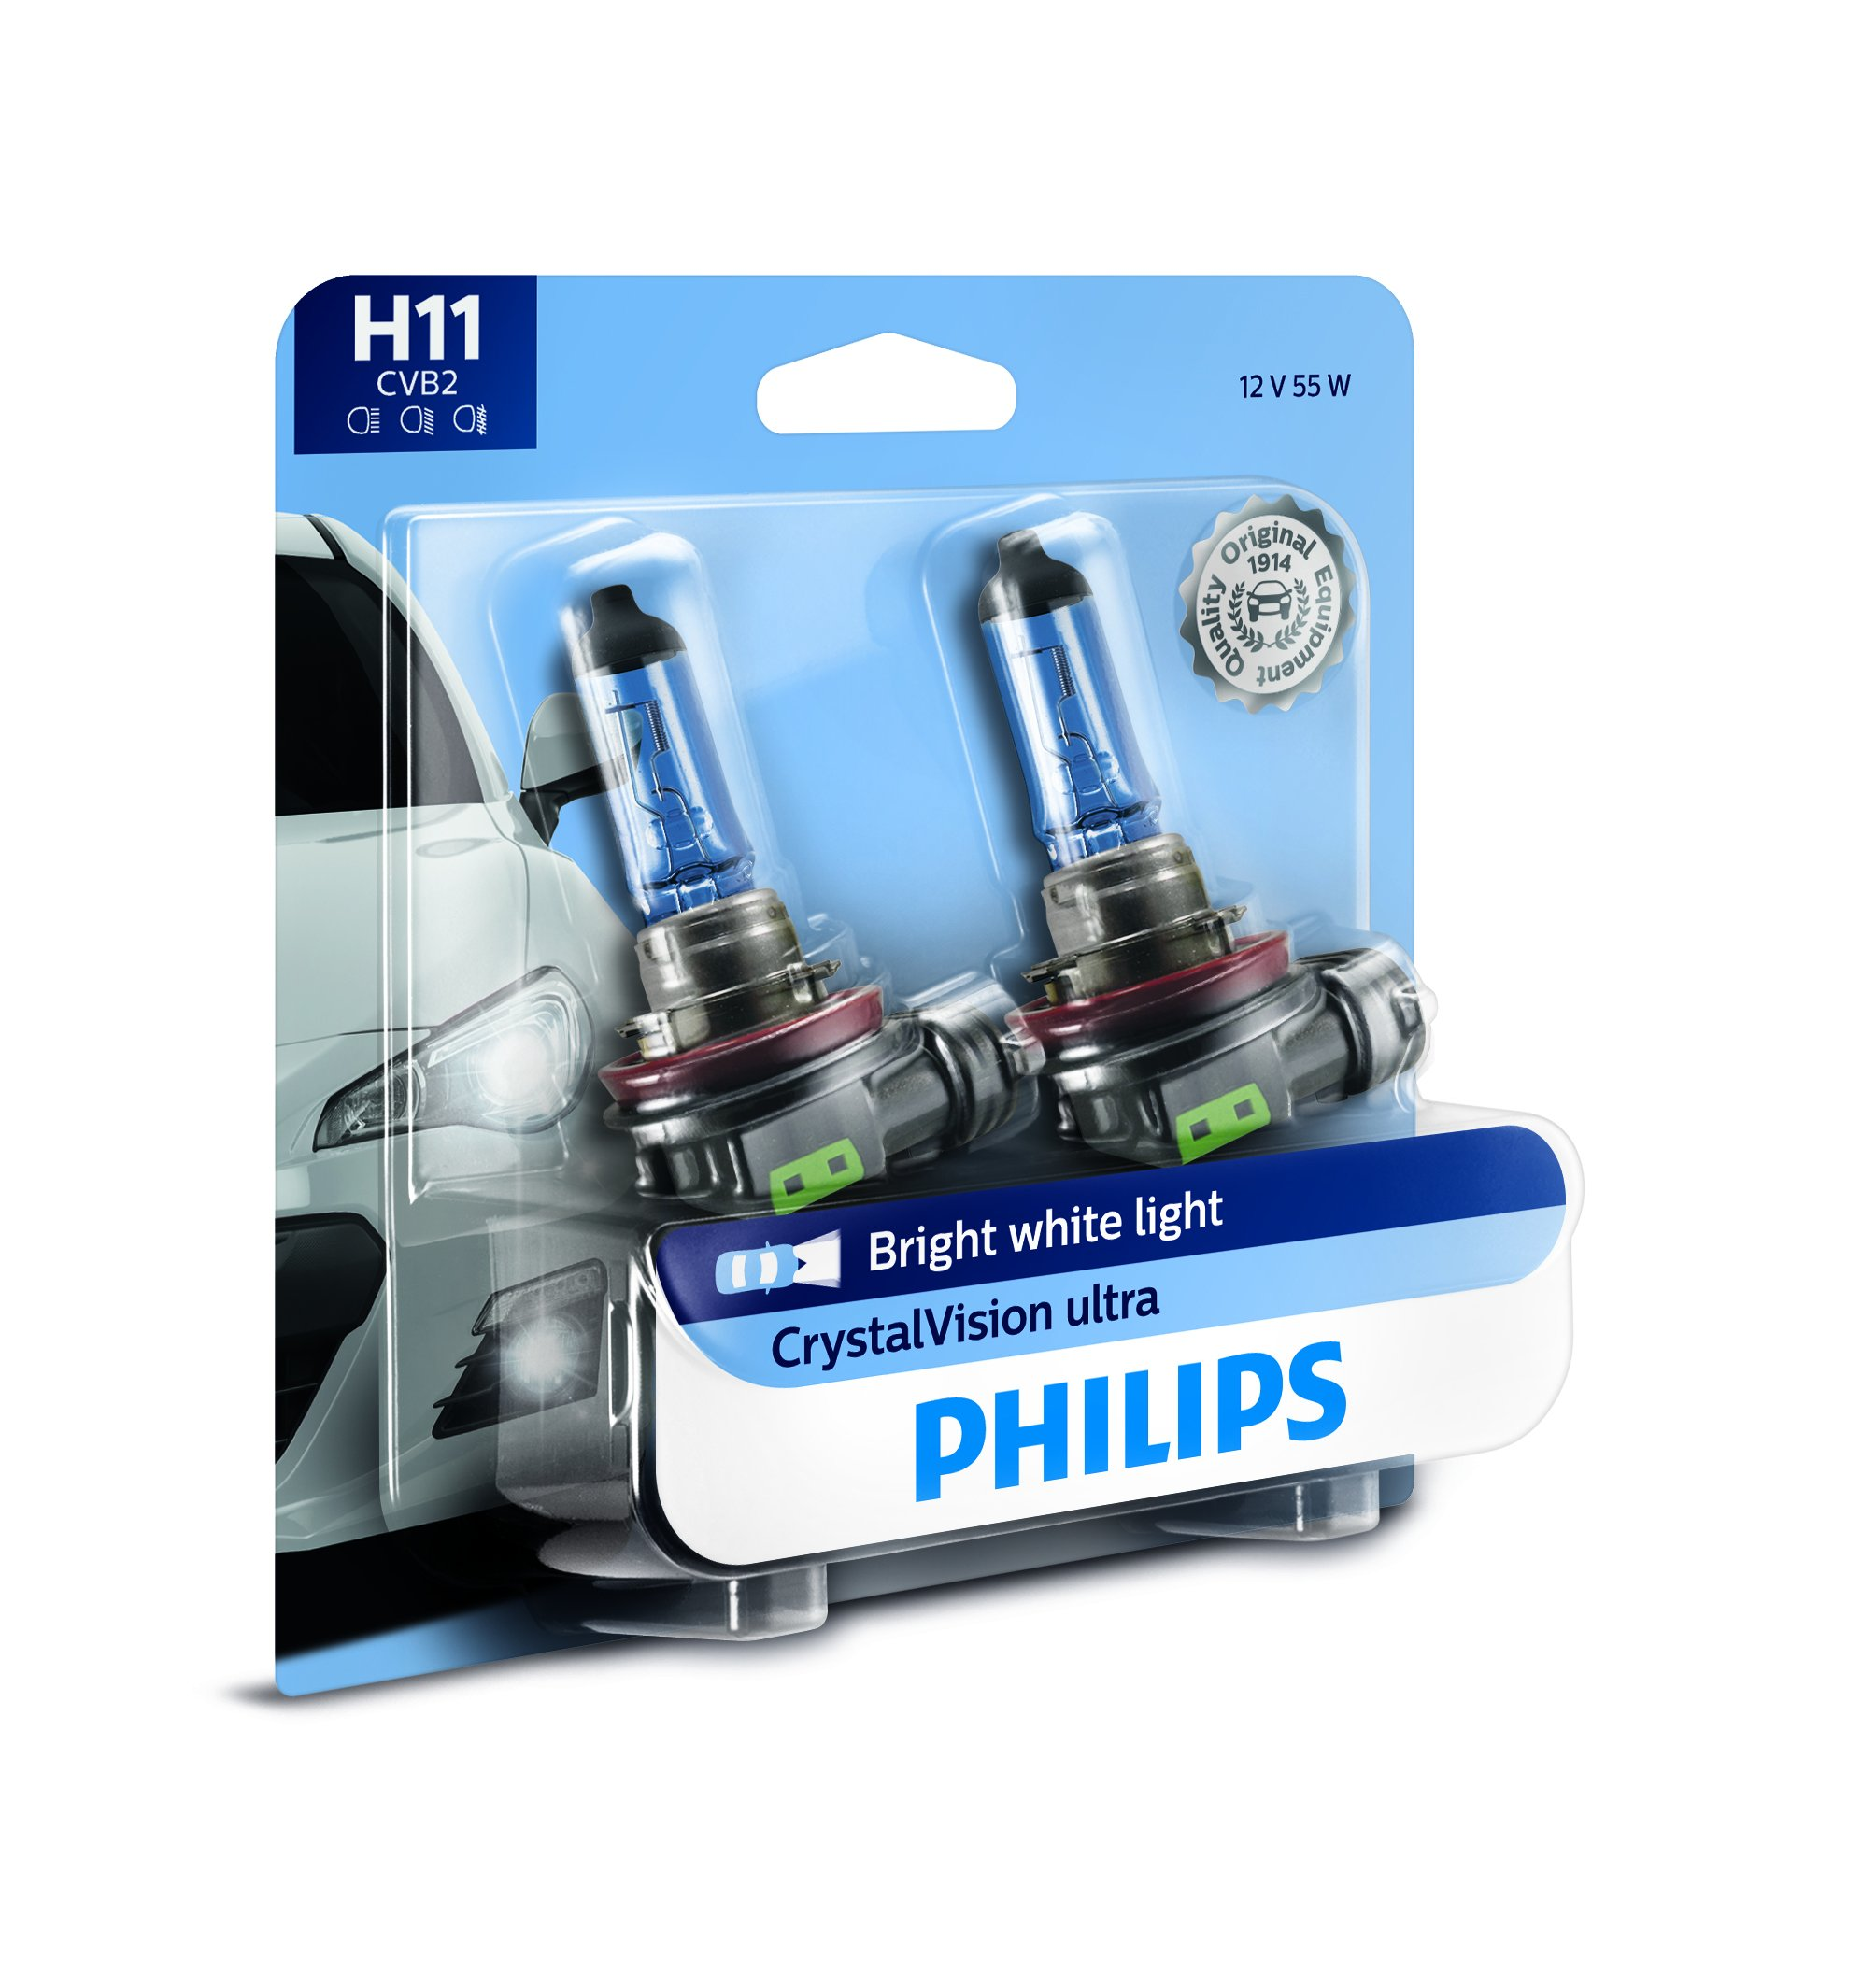 Philips H11 CrystalVision Ultra Upgrade Bright White Headlight Bulb, 2 Pack by PHILIPS